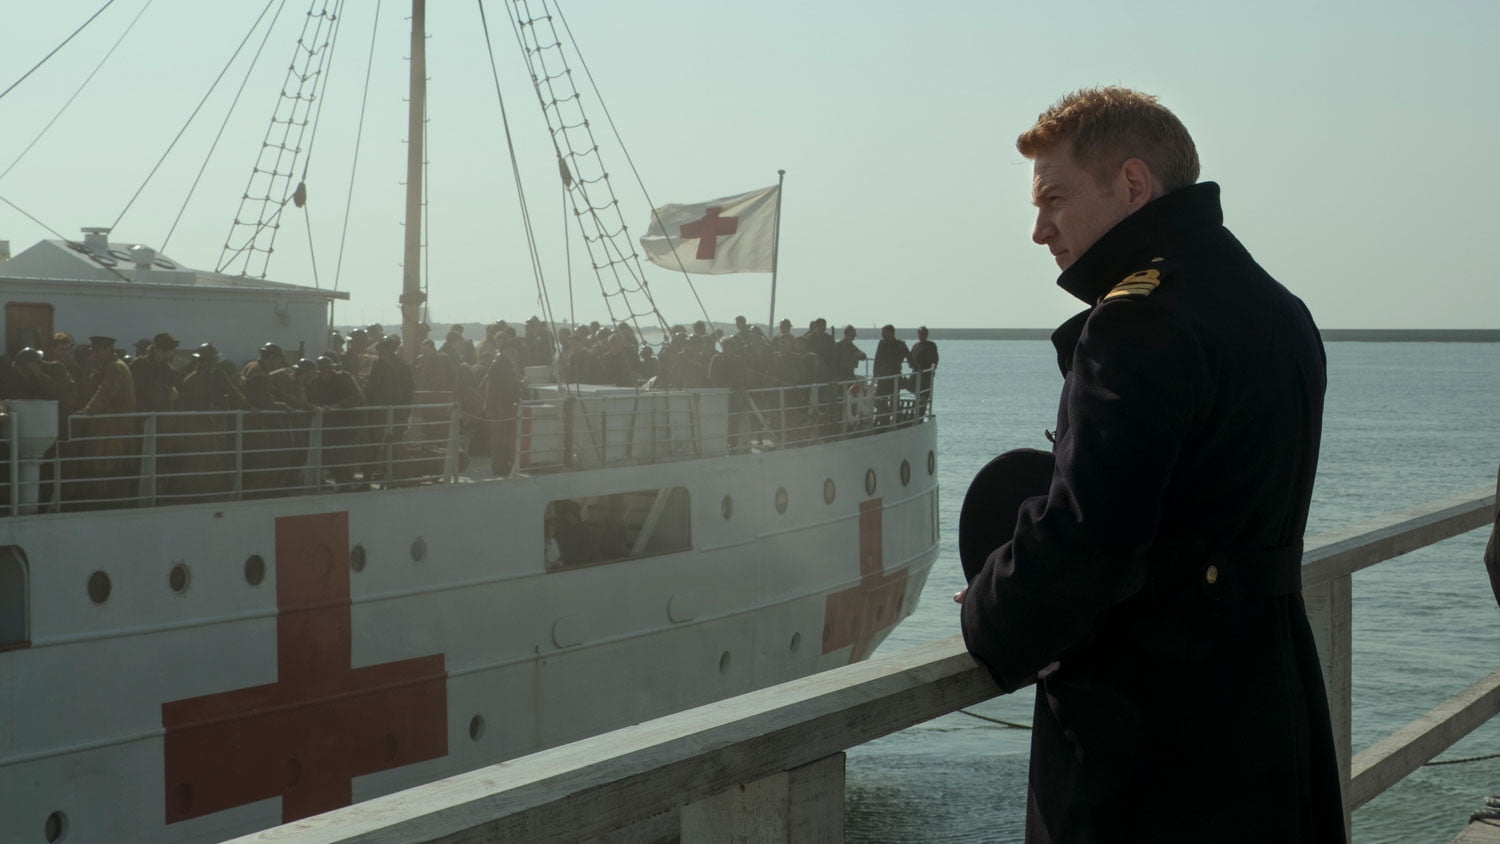 dunkirk movie, dunkirk, kenneth branagh, christopher nolan,